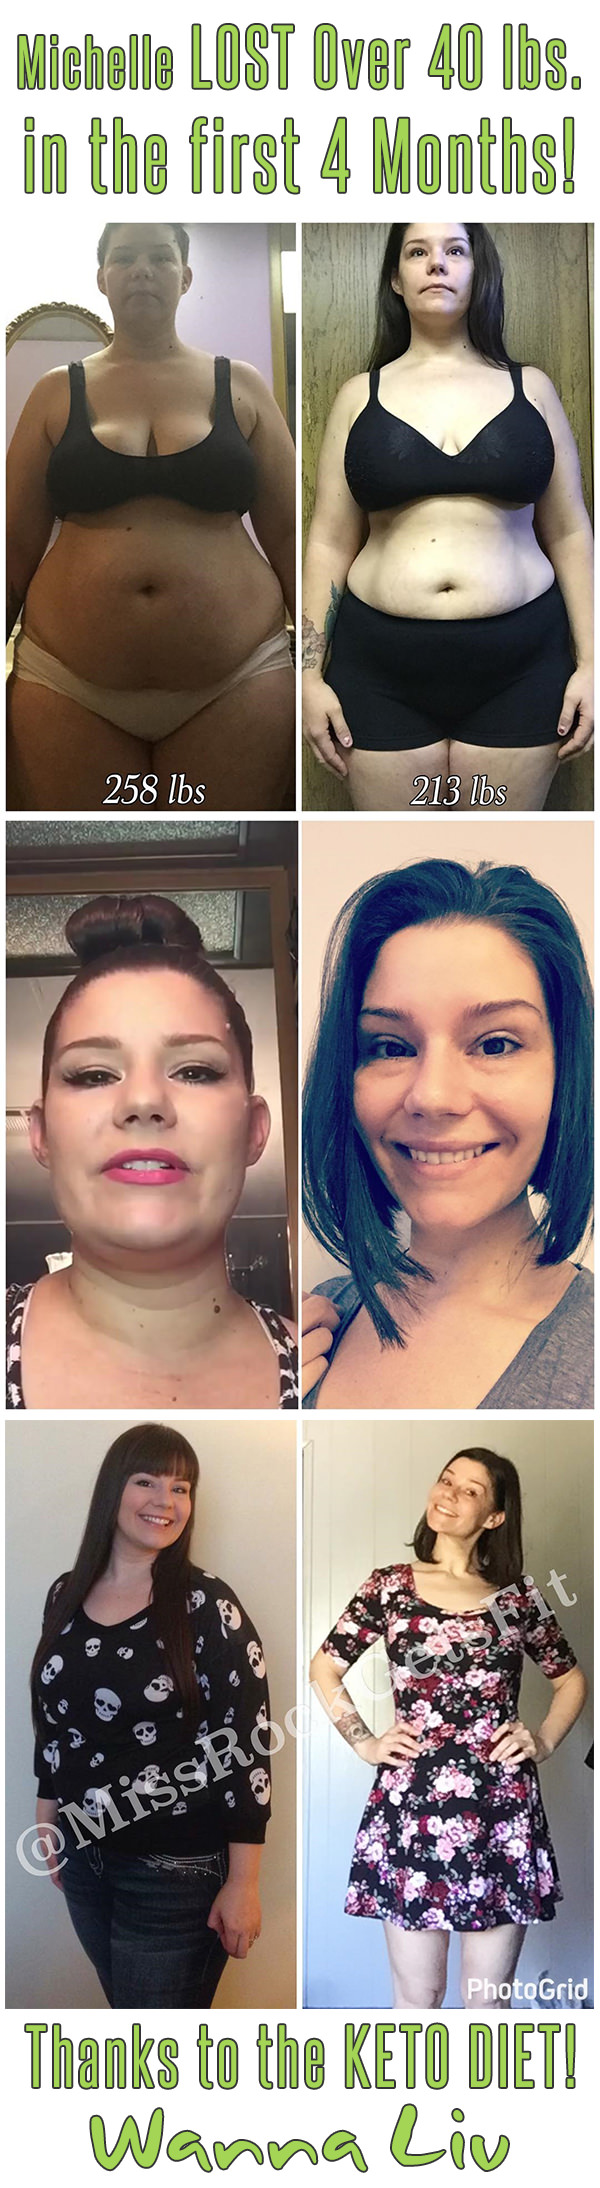 Michelle LOST Over 40 lbs. in the first 4 Months! Thanks to the KETO DIET! - Keto Success Stories #2 via Wanna Liv